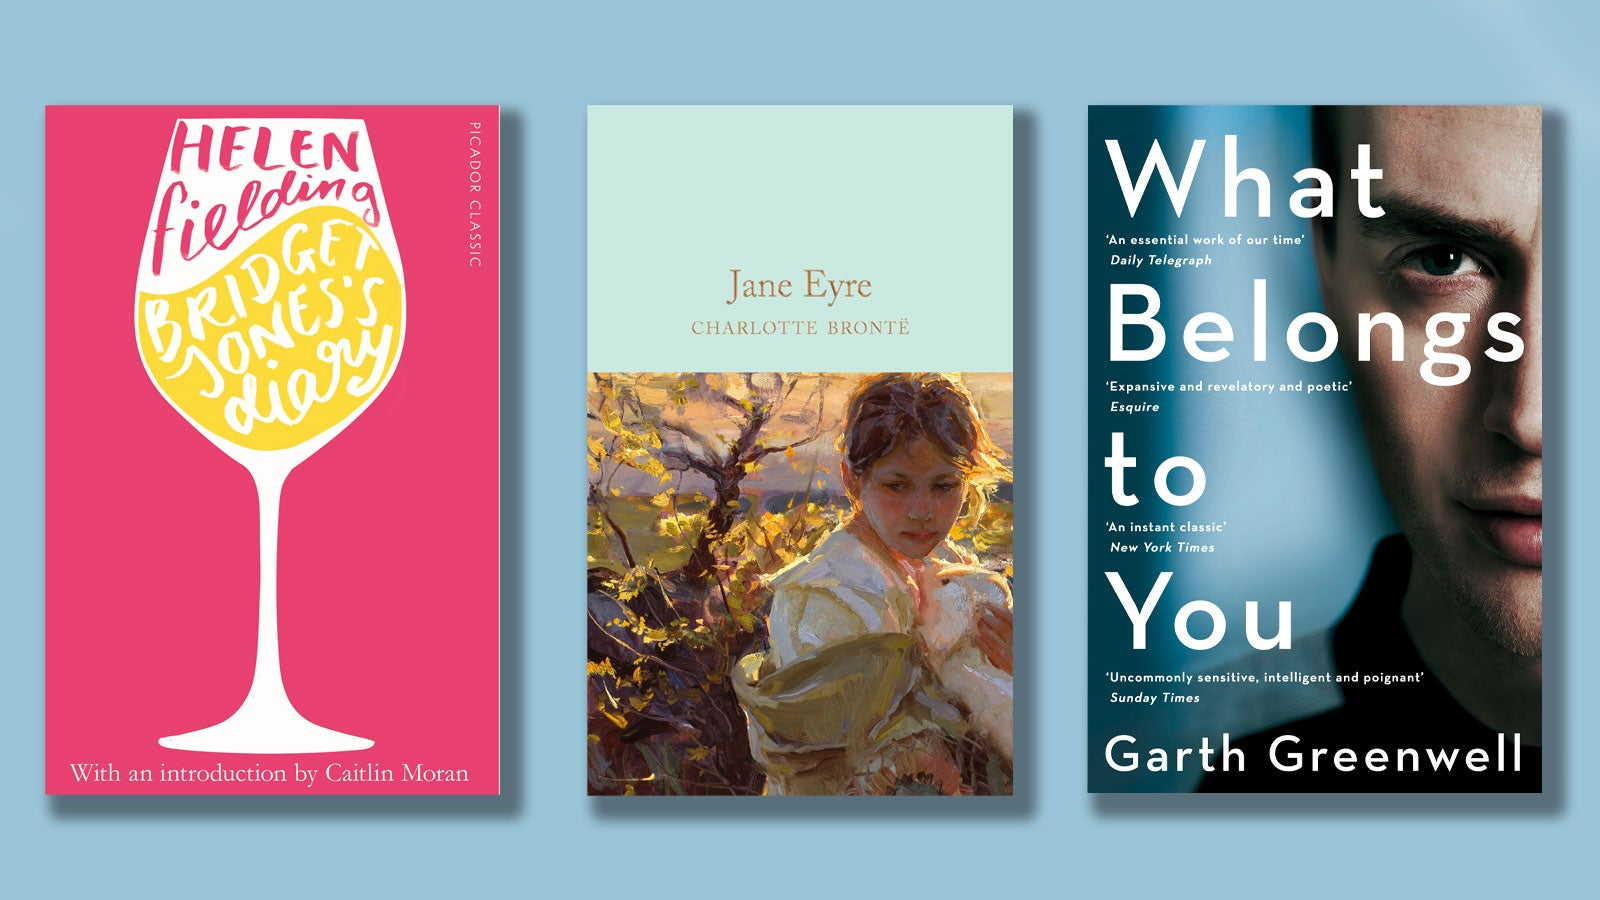 Bridget Jones's Diary, Jane Eyre and What Belongs to You book covers